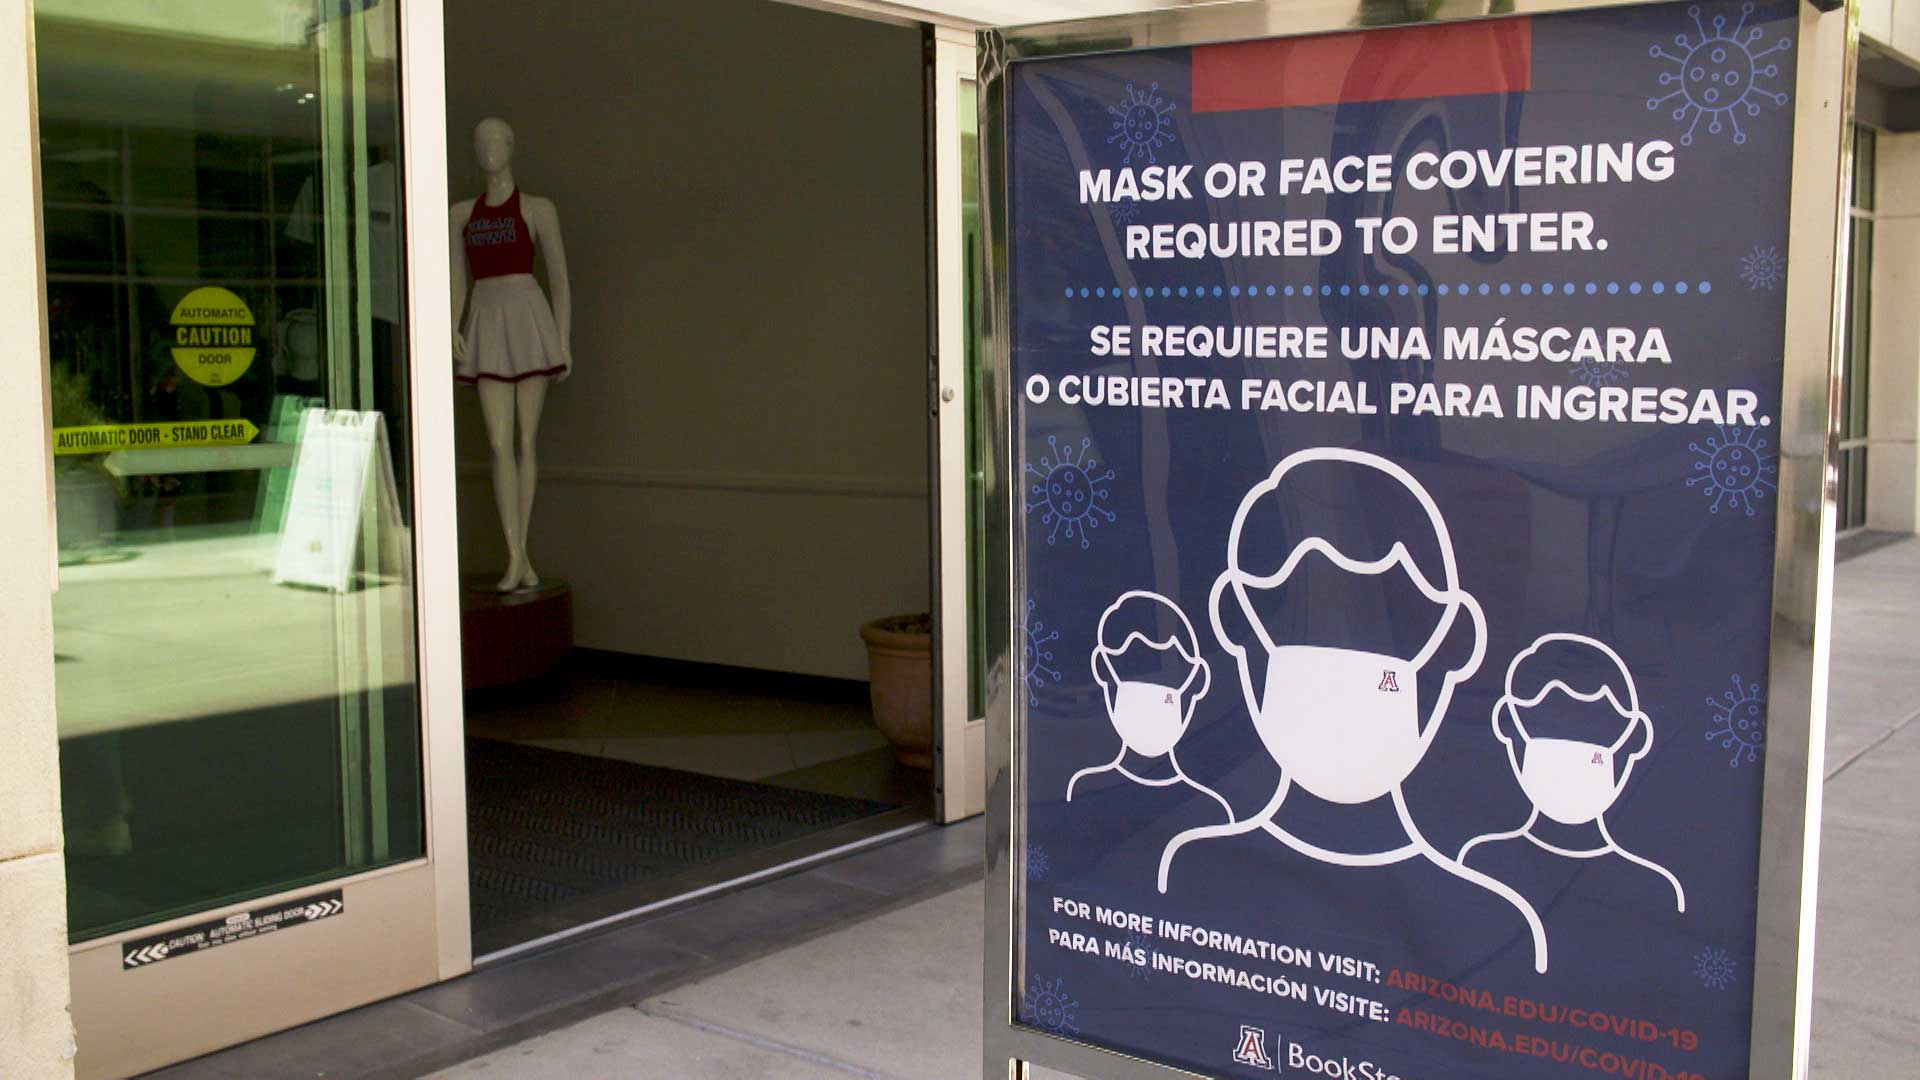 A sign posted outside the University of Arizona BookStores at the Student Union reminds customers that masks are required to shop inside.